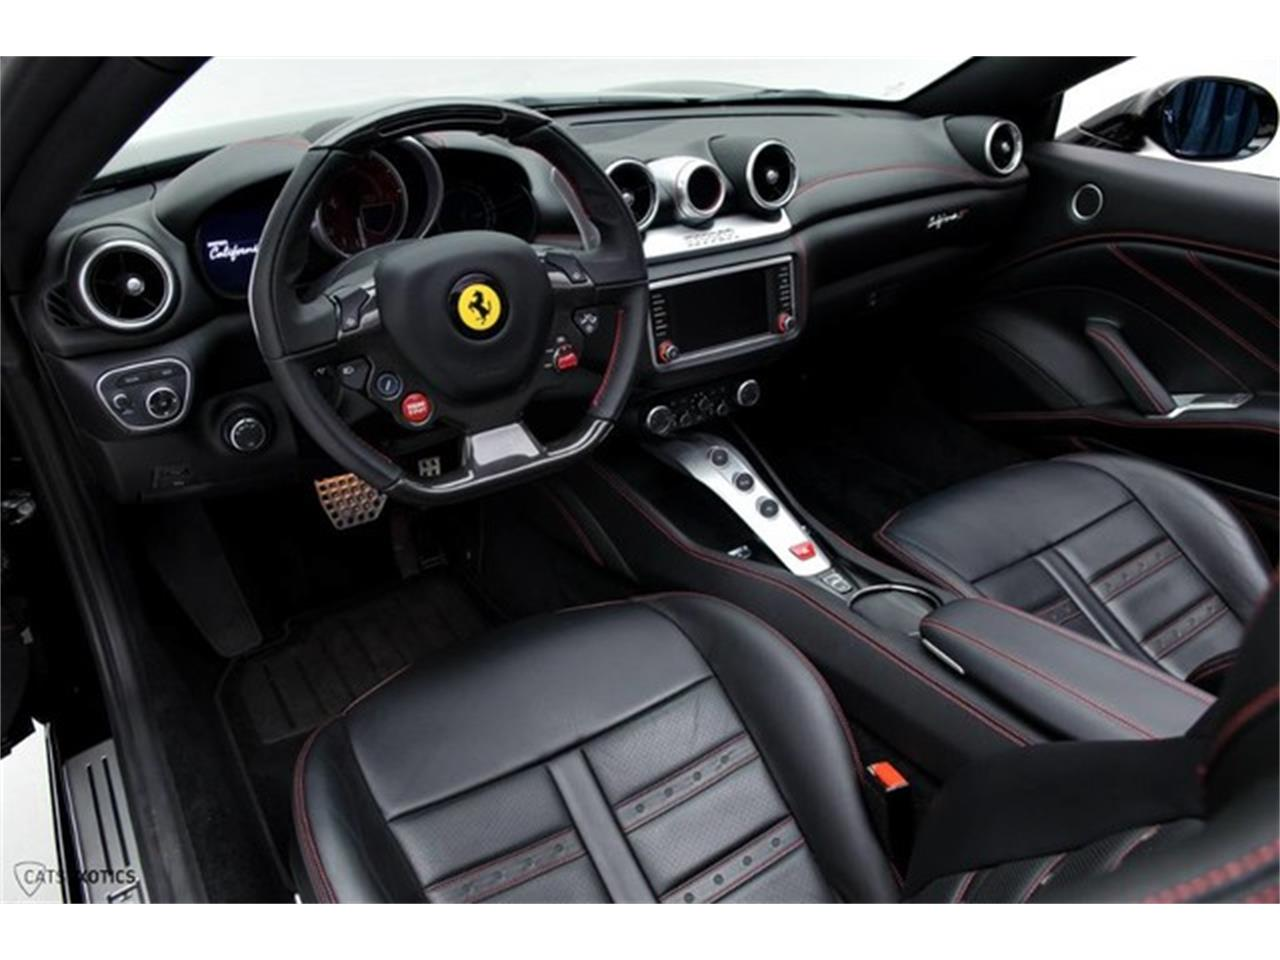 Large Picture of '16 Ferrari California Offered by Cats Exotics - L63E